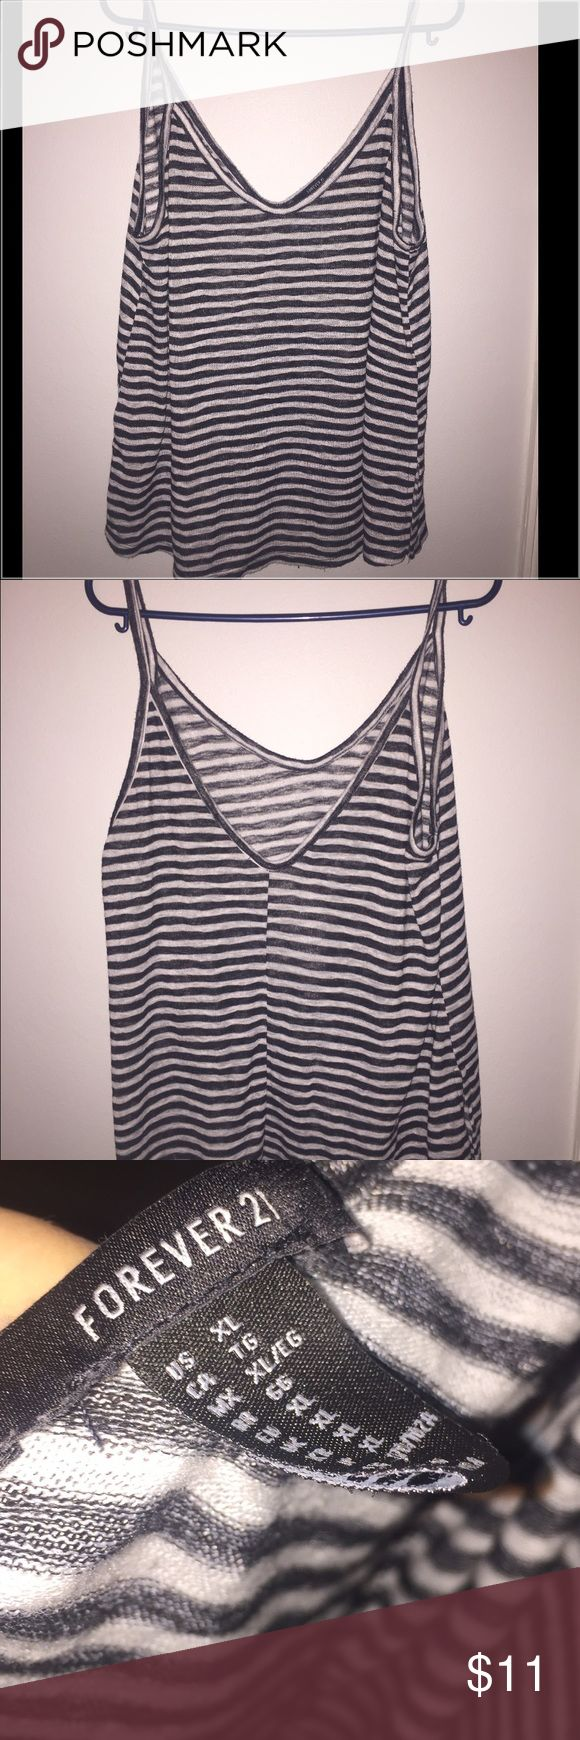 Striped Blouse Black and white horizontal striped blouse with spaghetti straps -Never worn- Forever 21 Tops Tank Tops